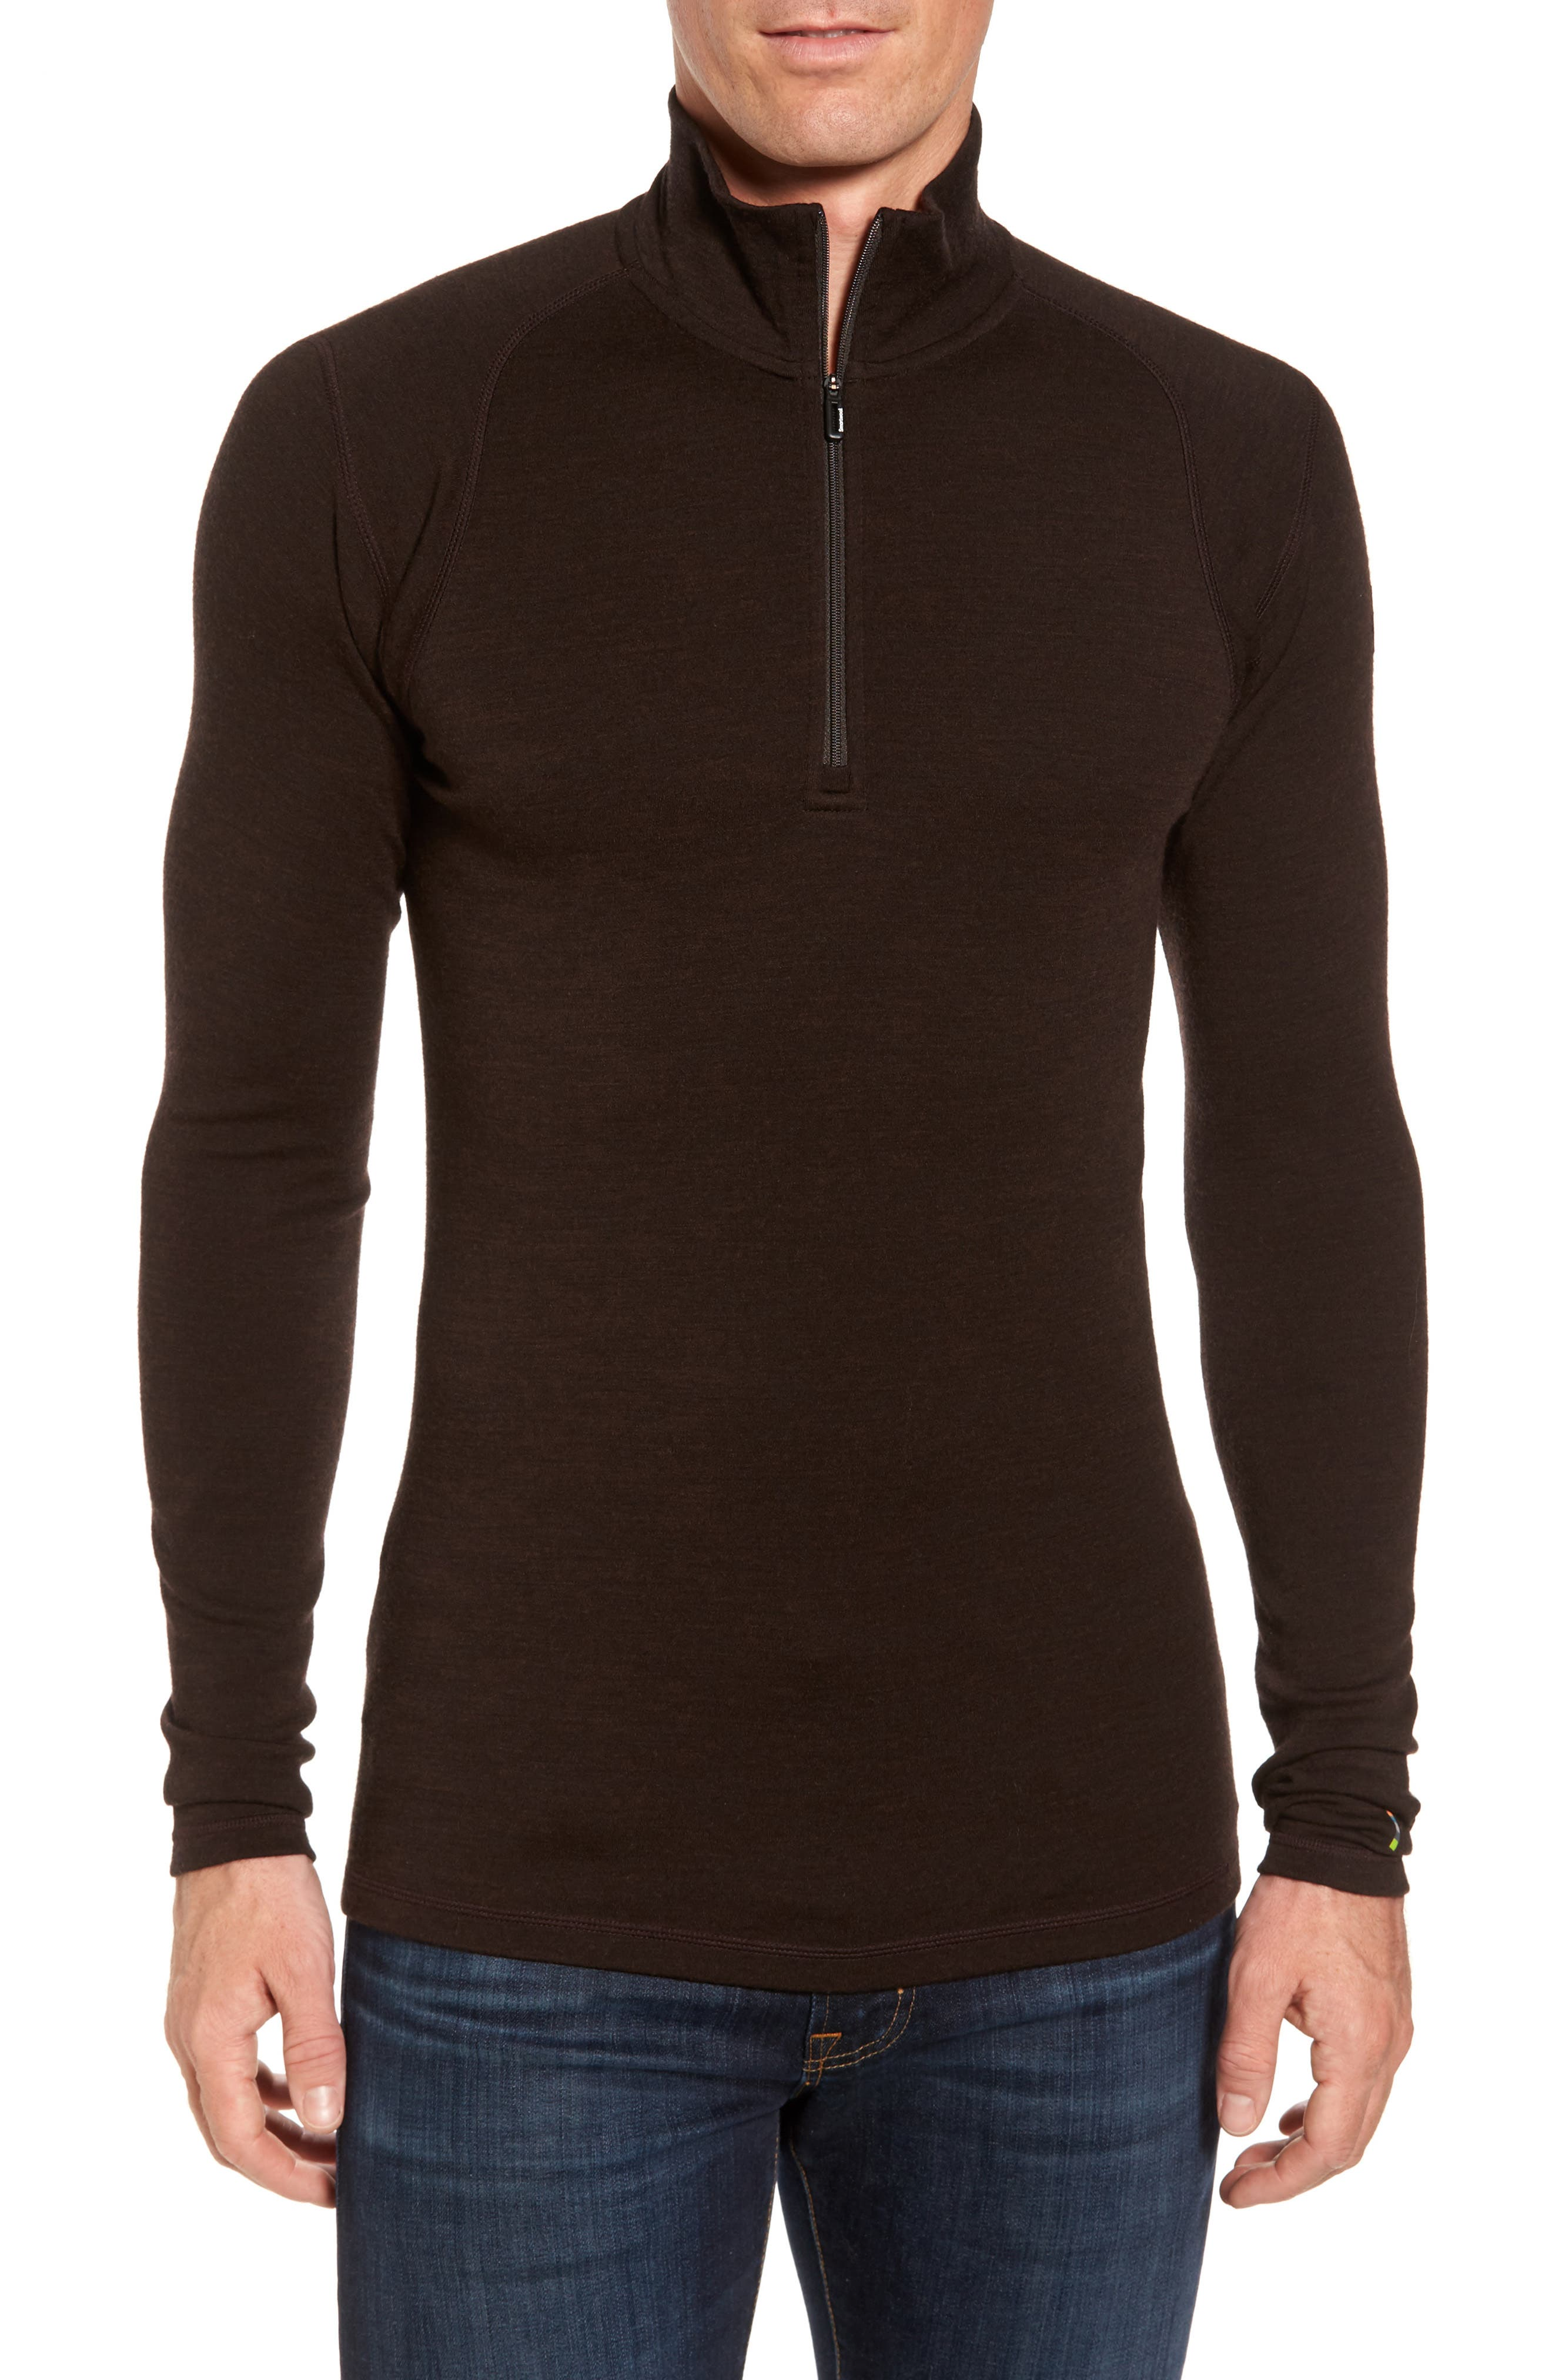 Alternate Image 1 Selected - Smartwool Merino 250 Base Layer Quarter Zip Pullover